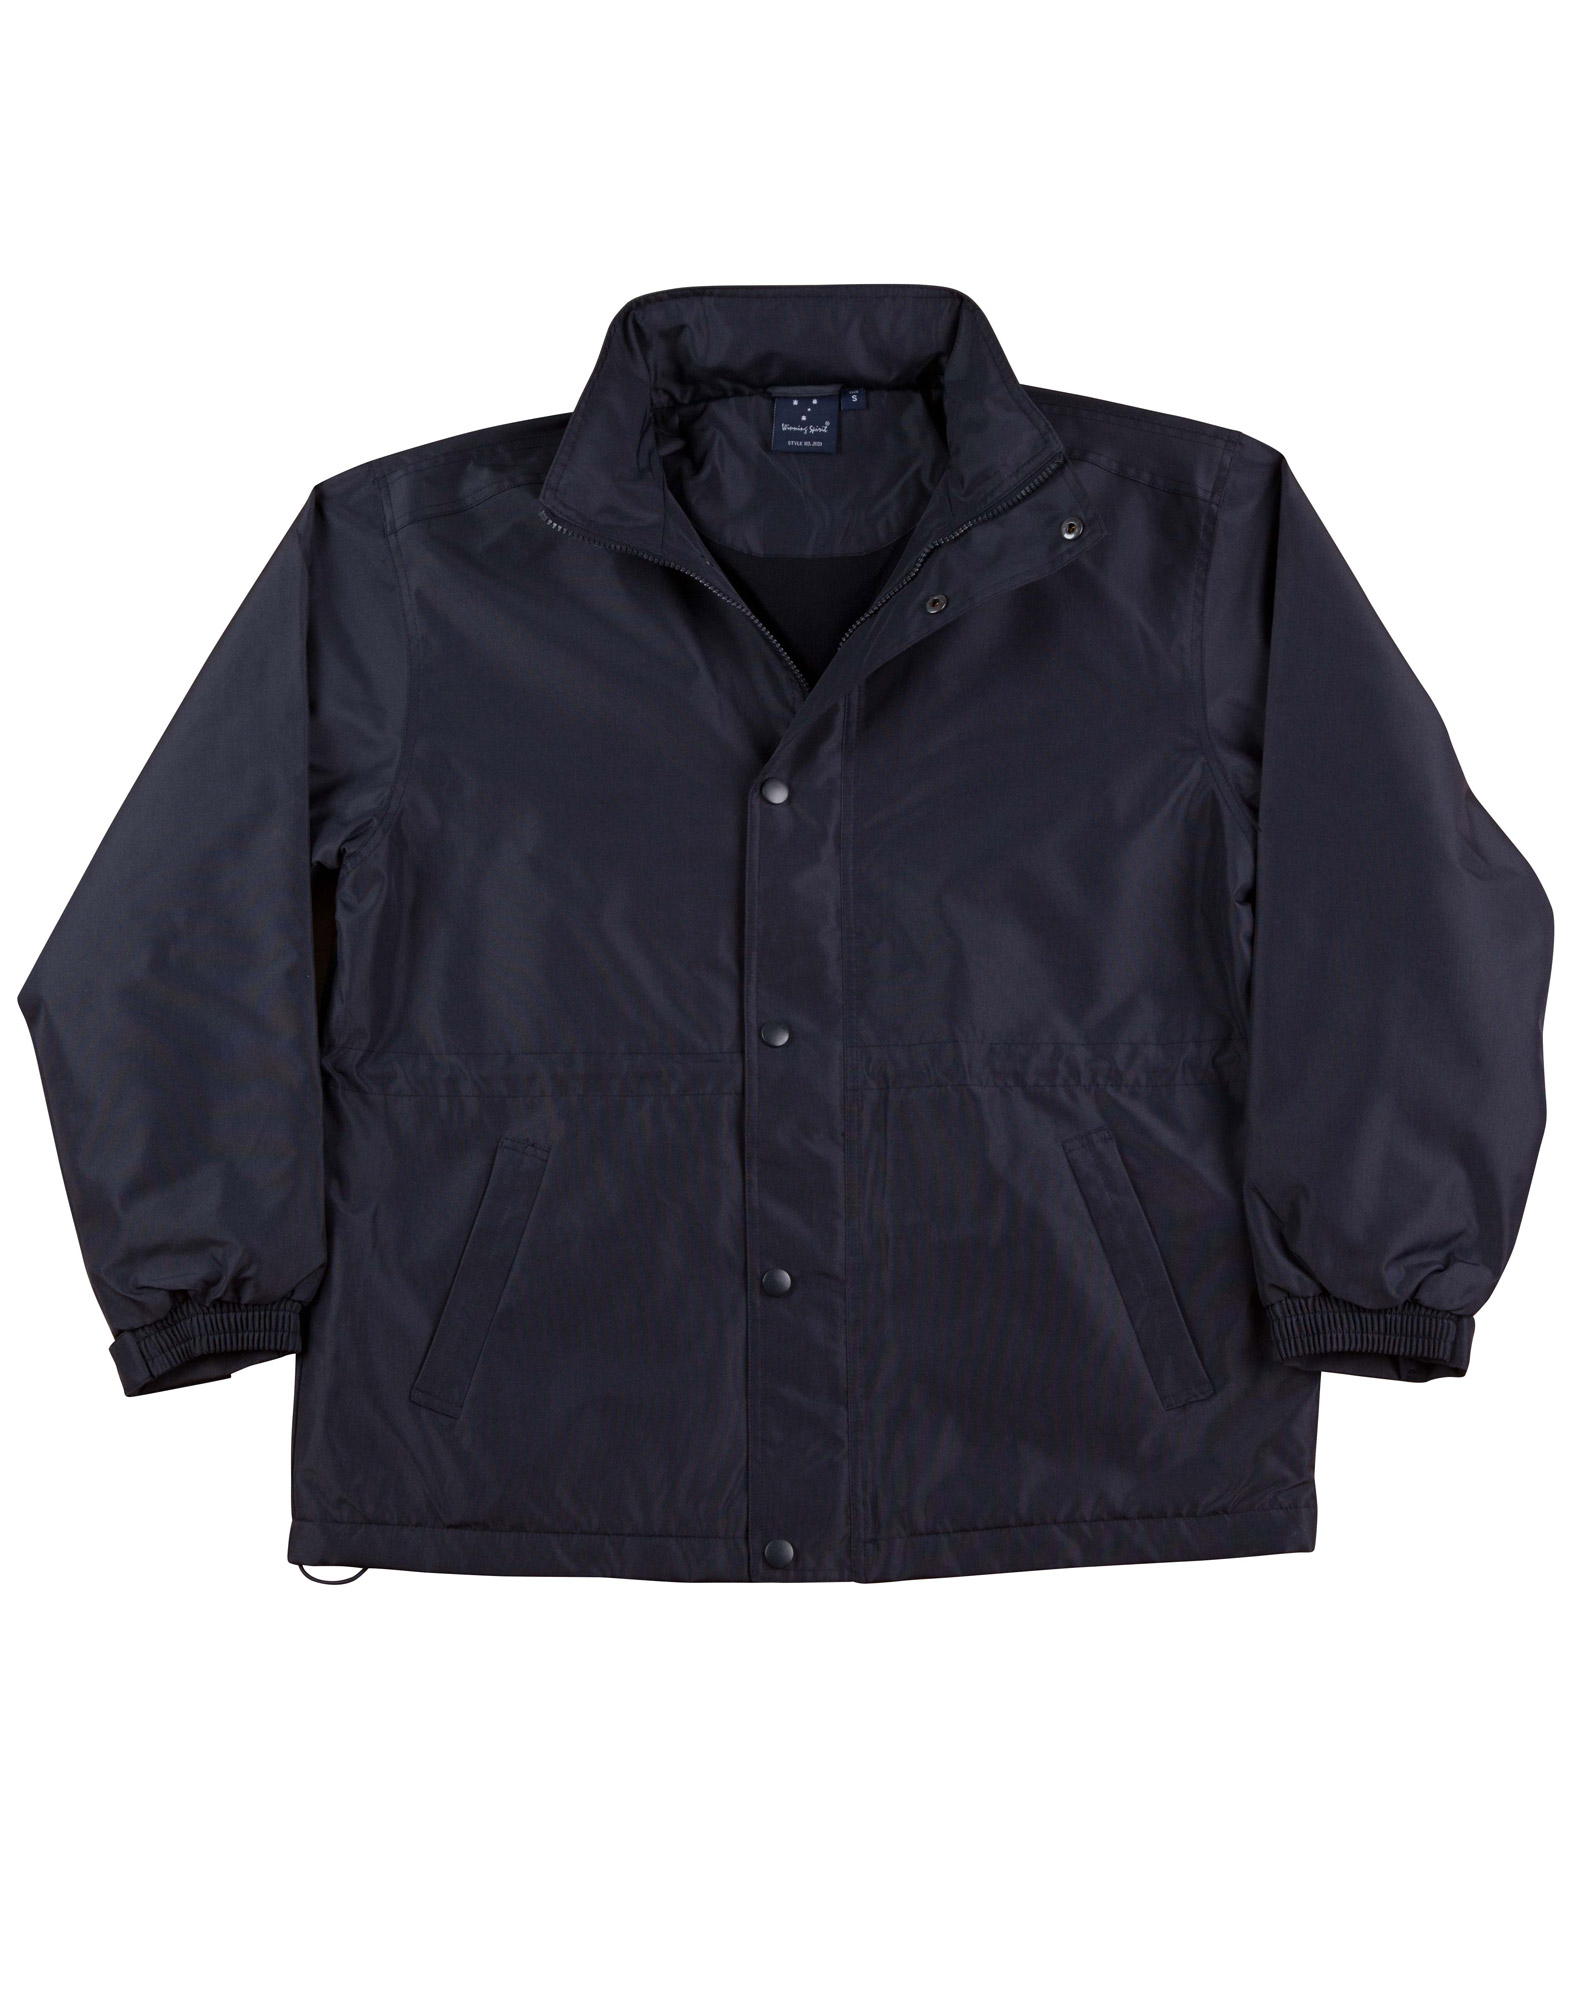 KDARC Winter Jacket